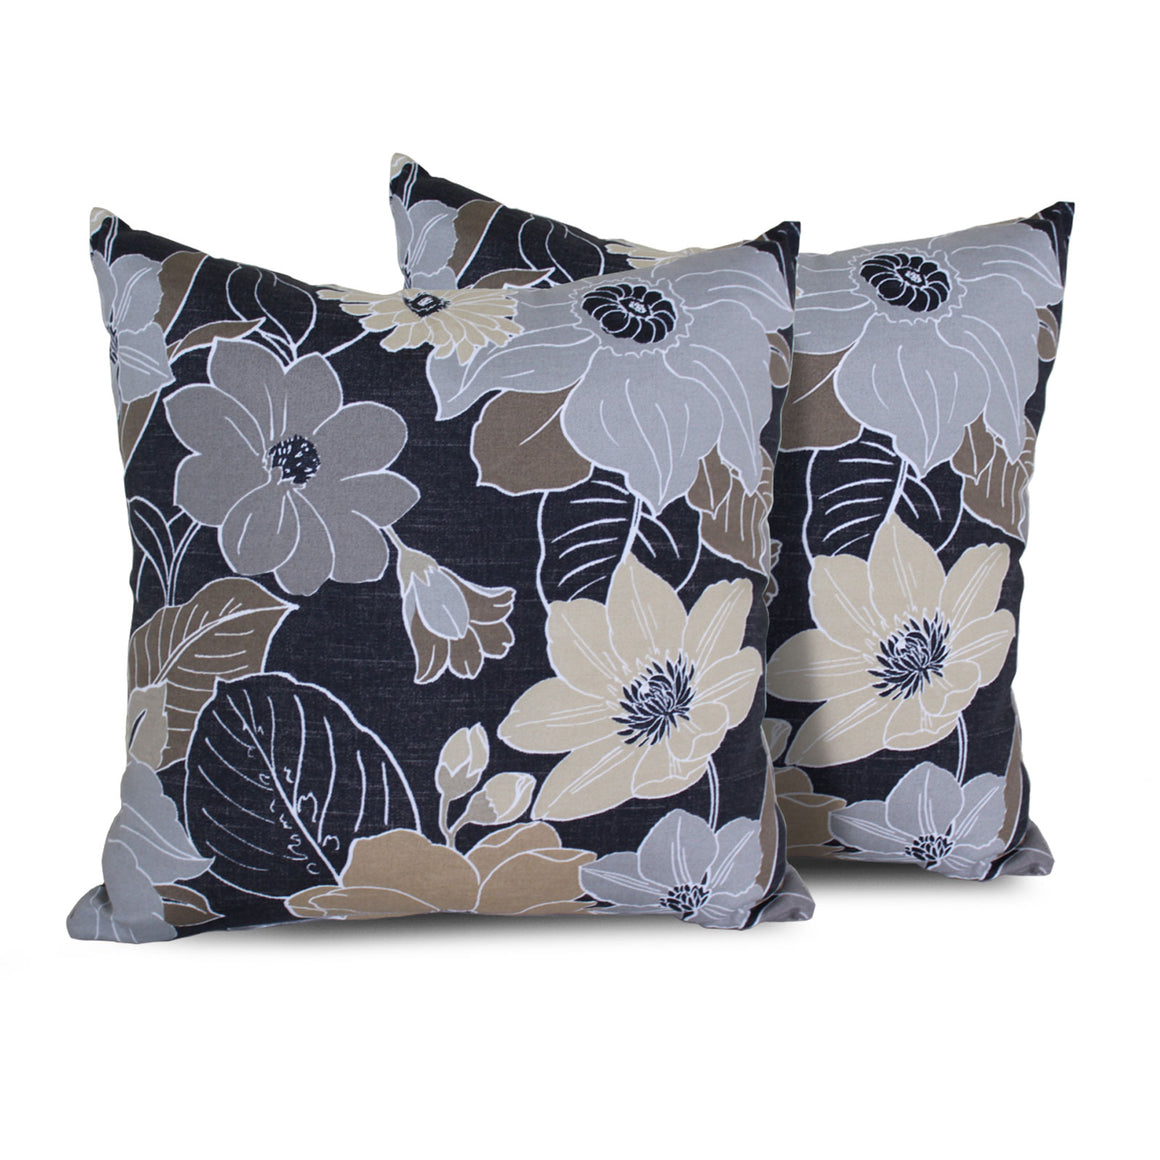 Grey Floral Outdoor Throw Pillows Square Set of 2 , TK Classics- grayburd